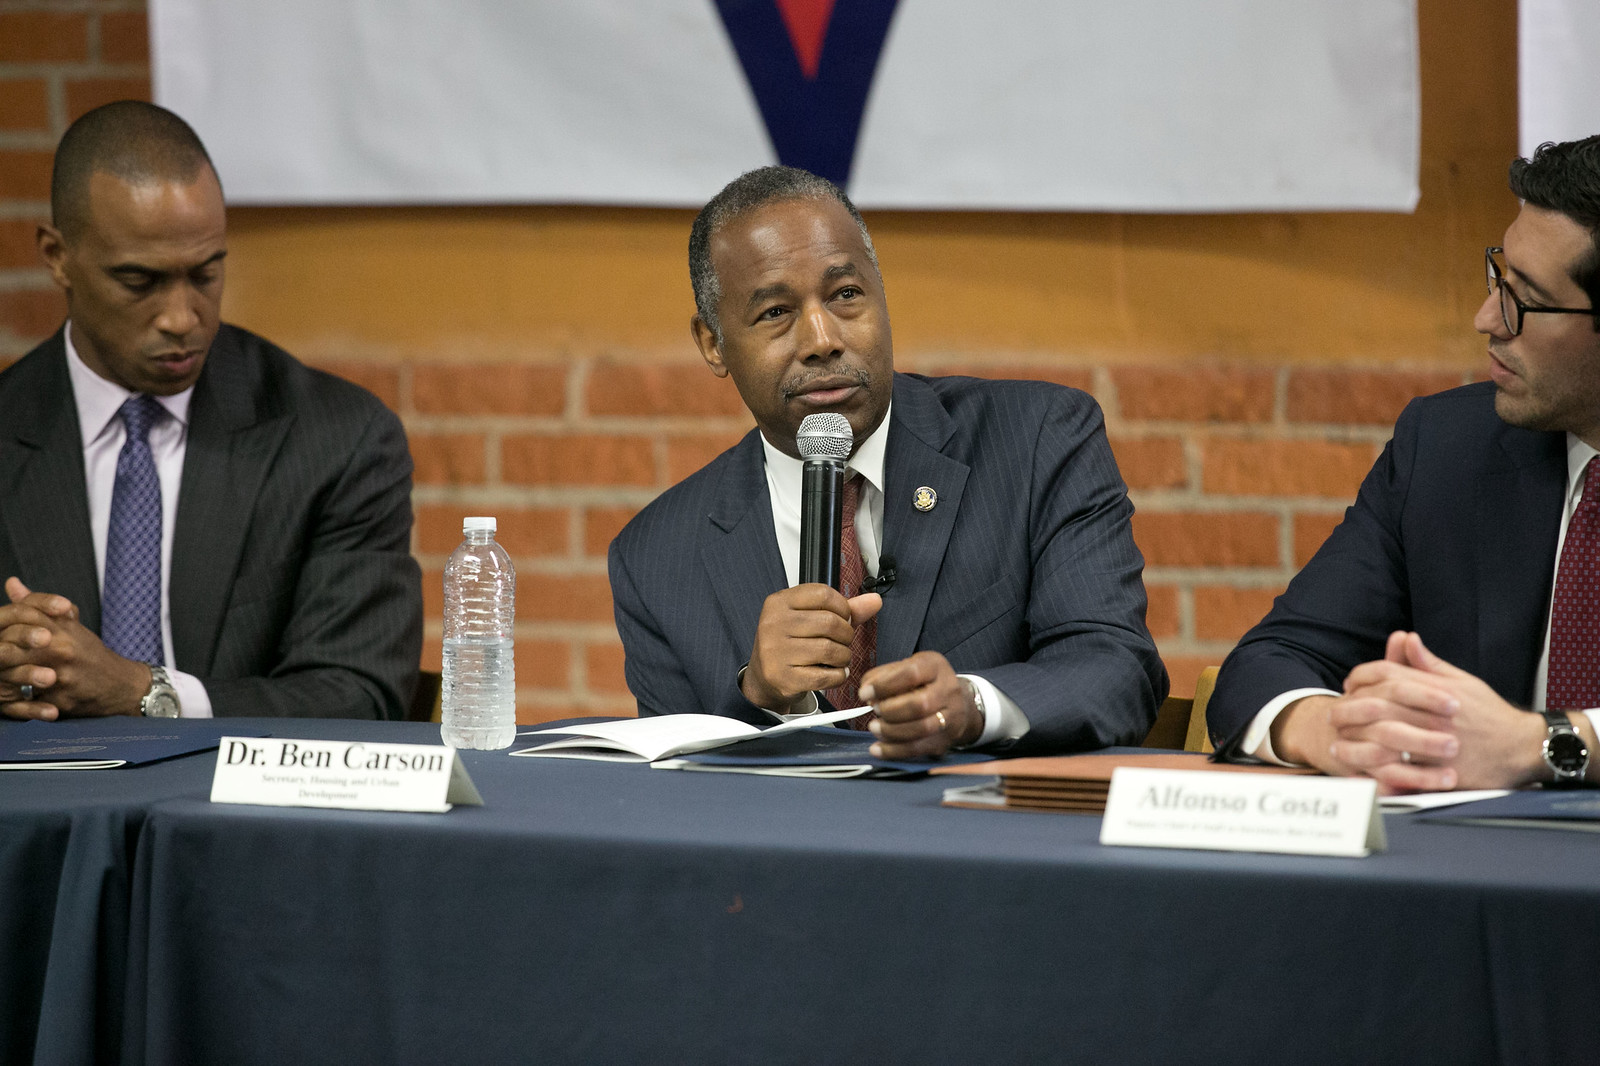 Secretary Carson leads a roundtable in Los Angeles